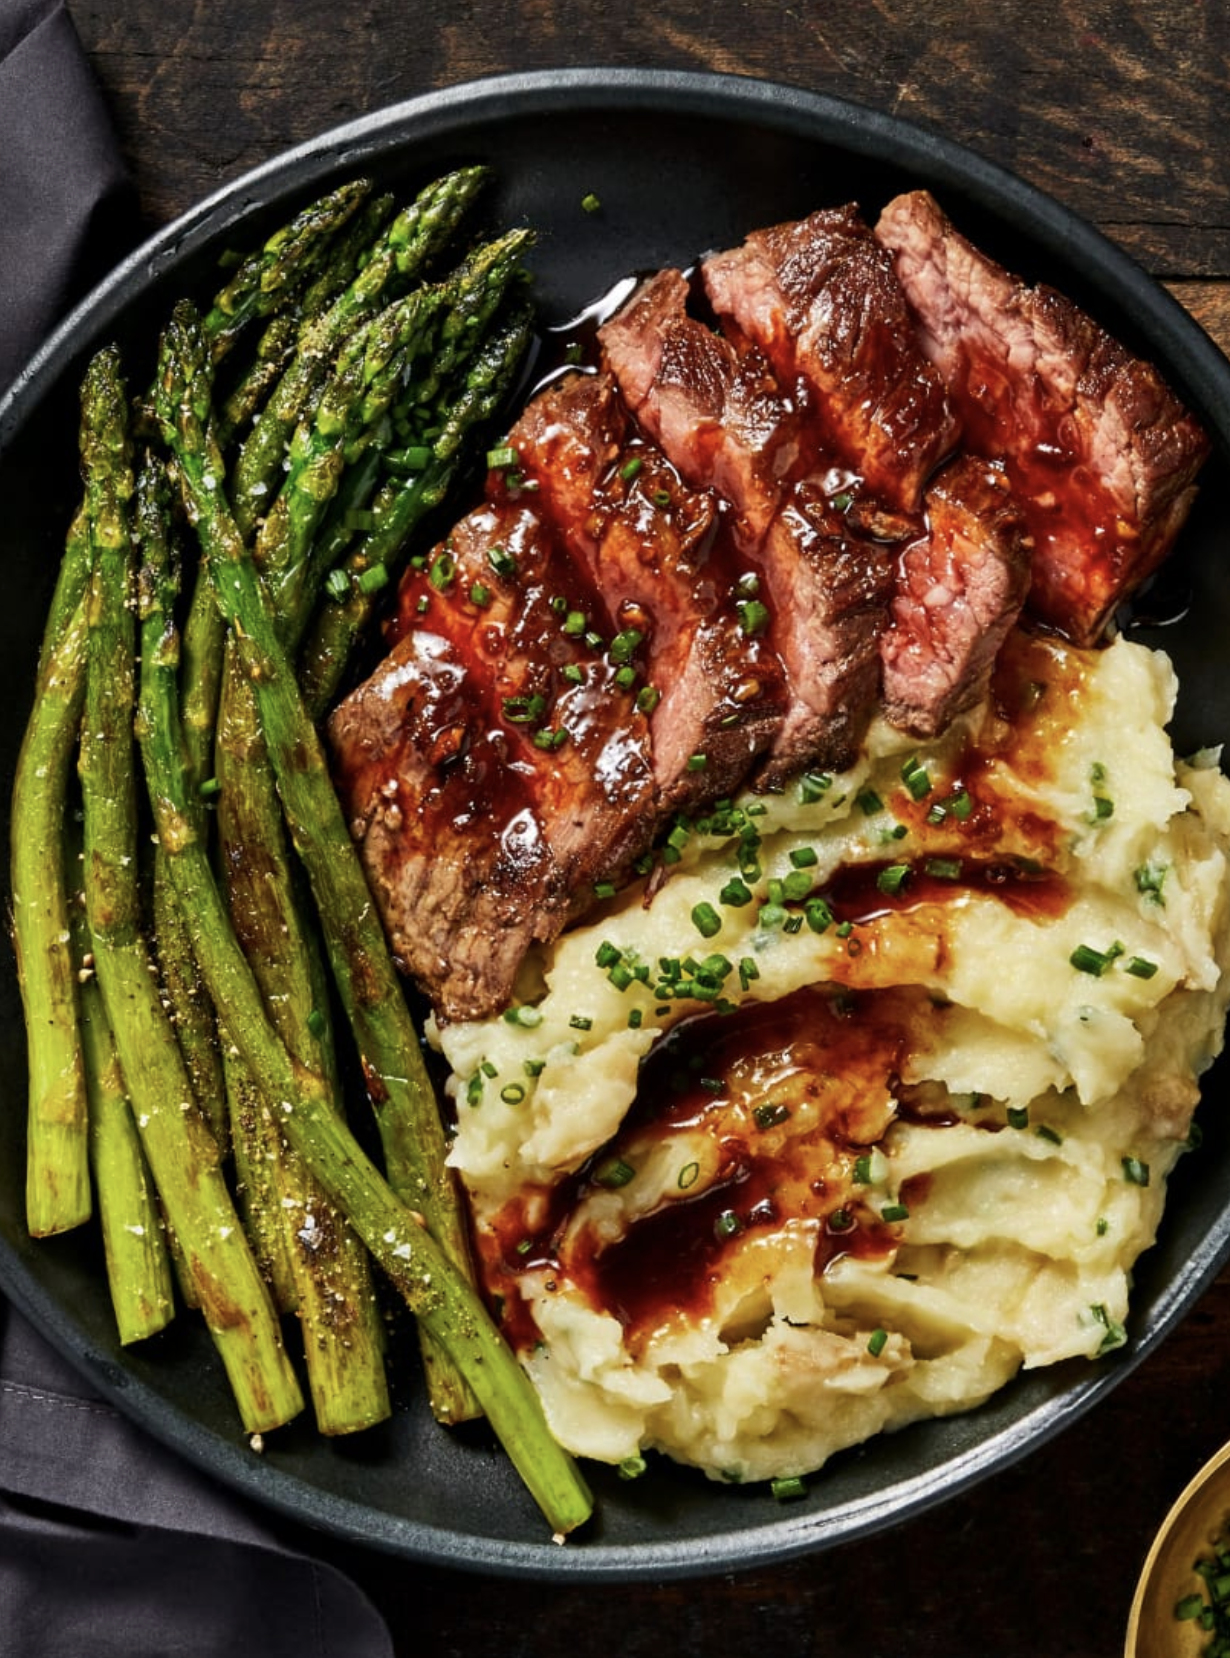 25 Sunday Dinner Ideas With Easy Recipes The Whole Family Will Love Sunday Dinner Recipes Recipes Soul Food